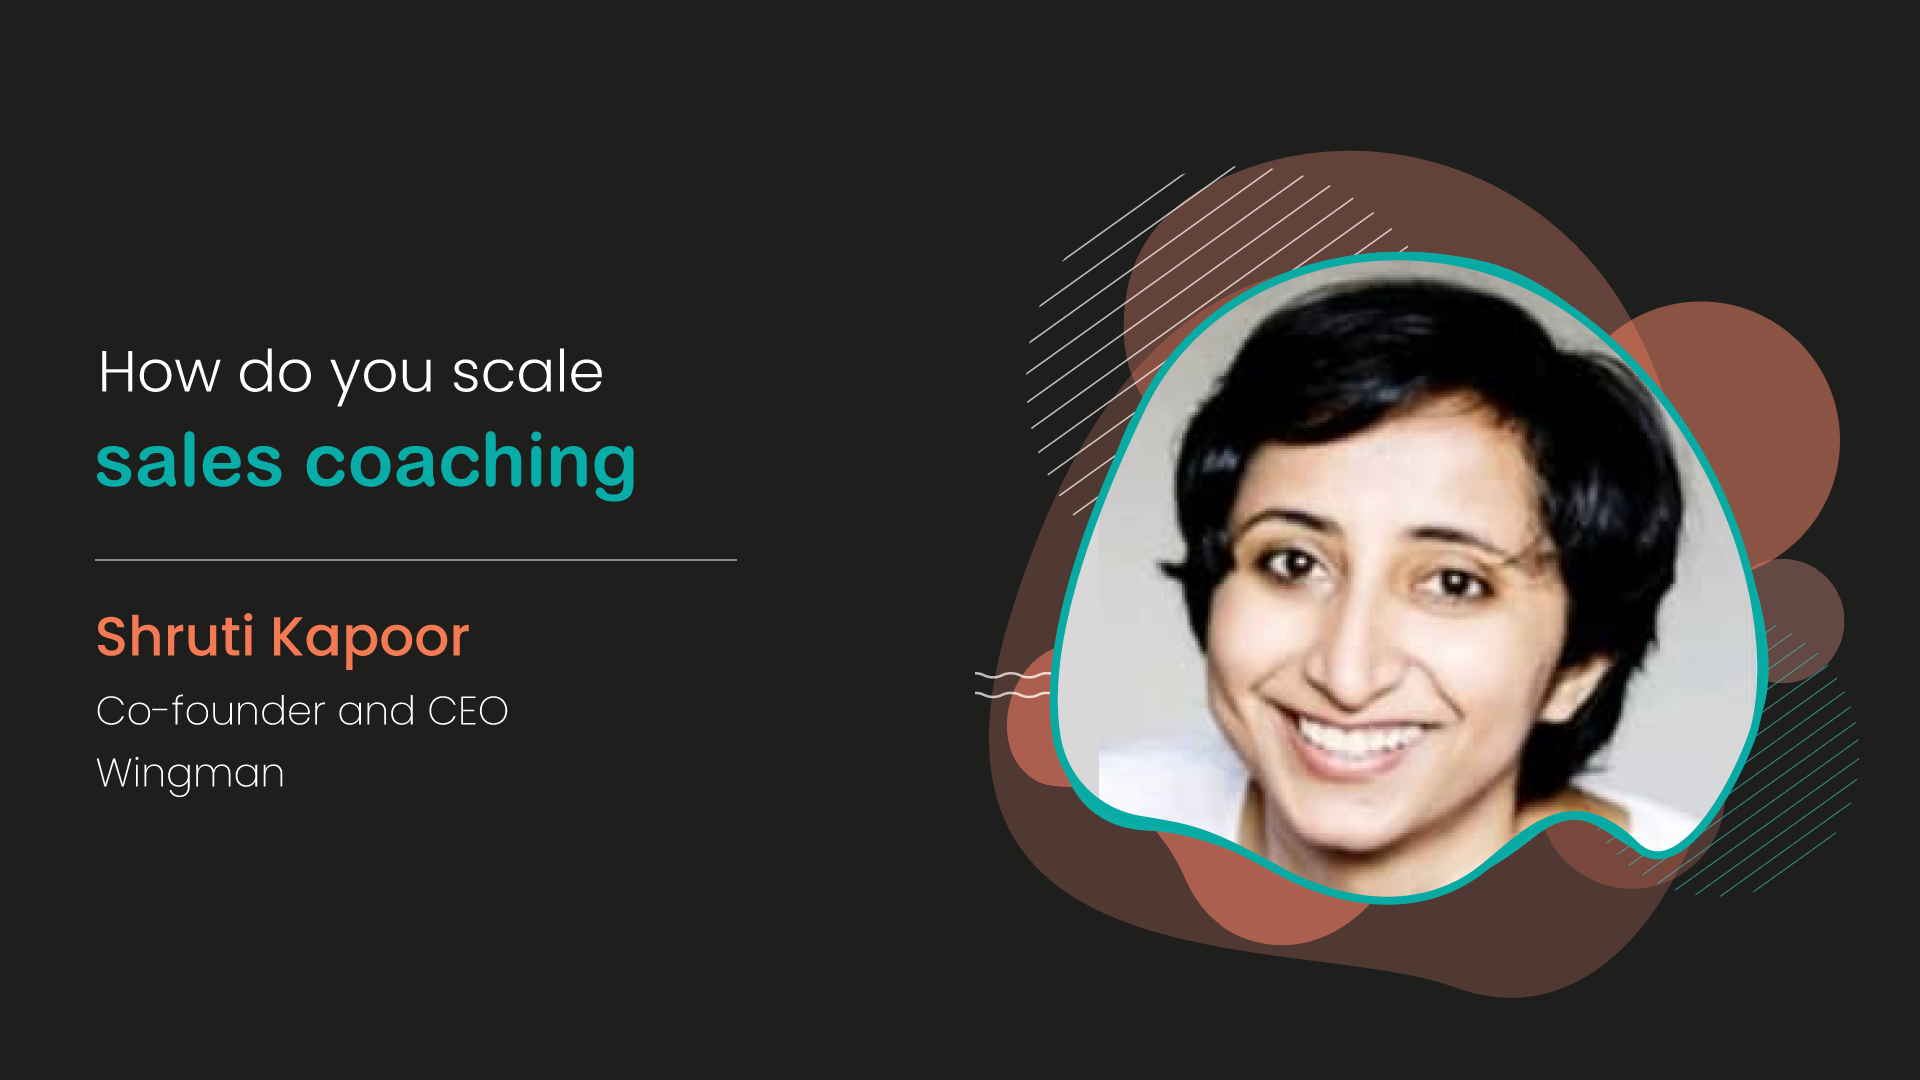 How do you scale sales coaching?